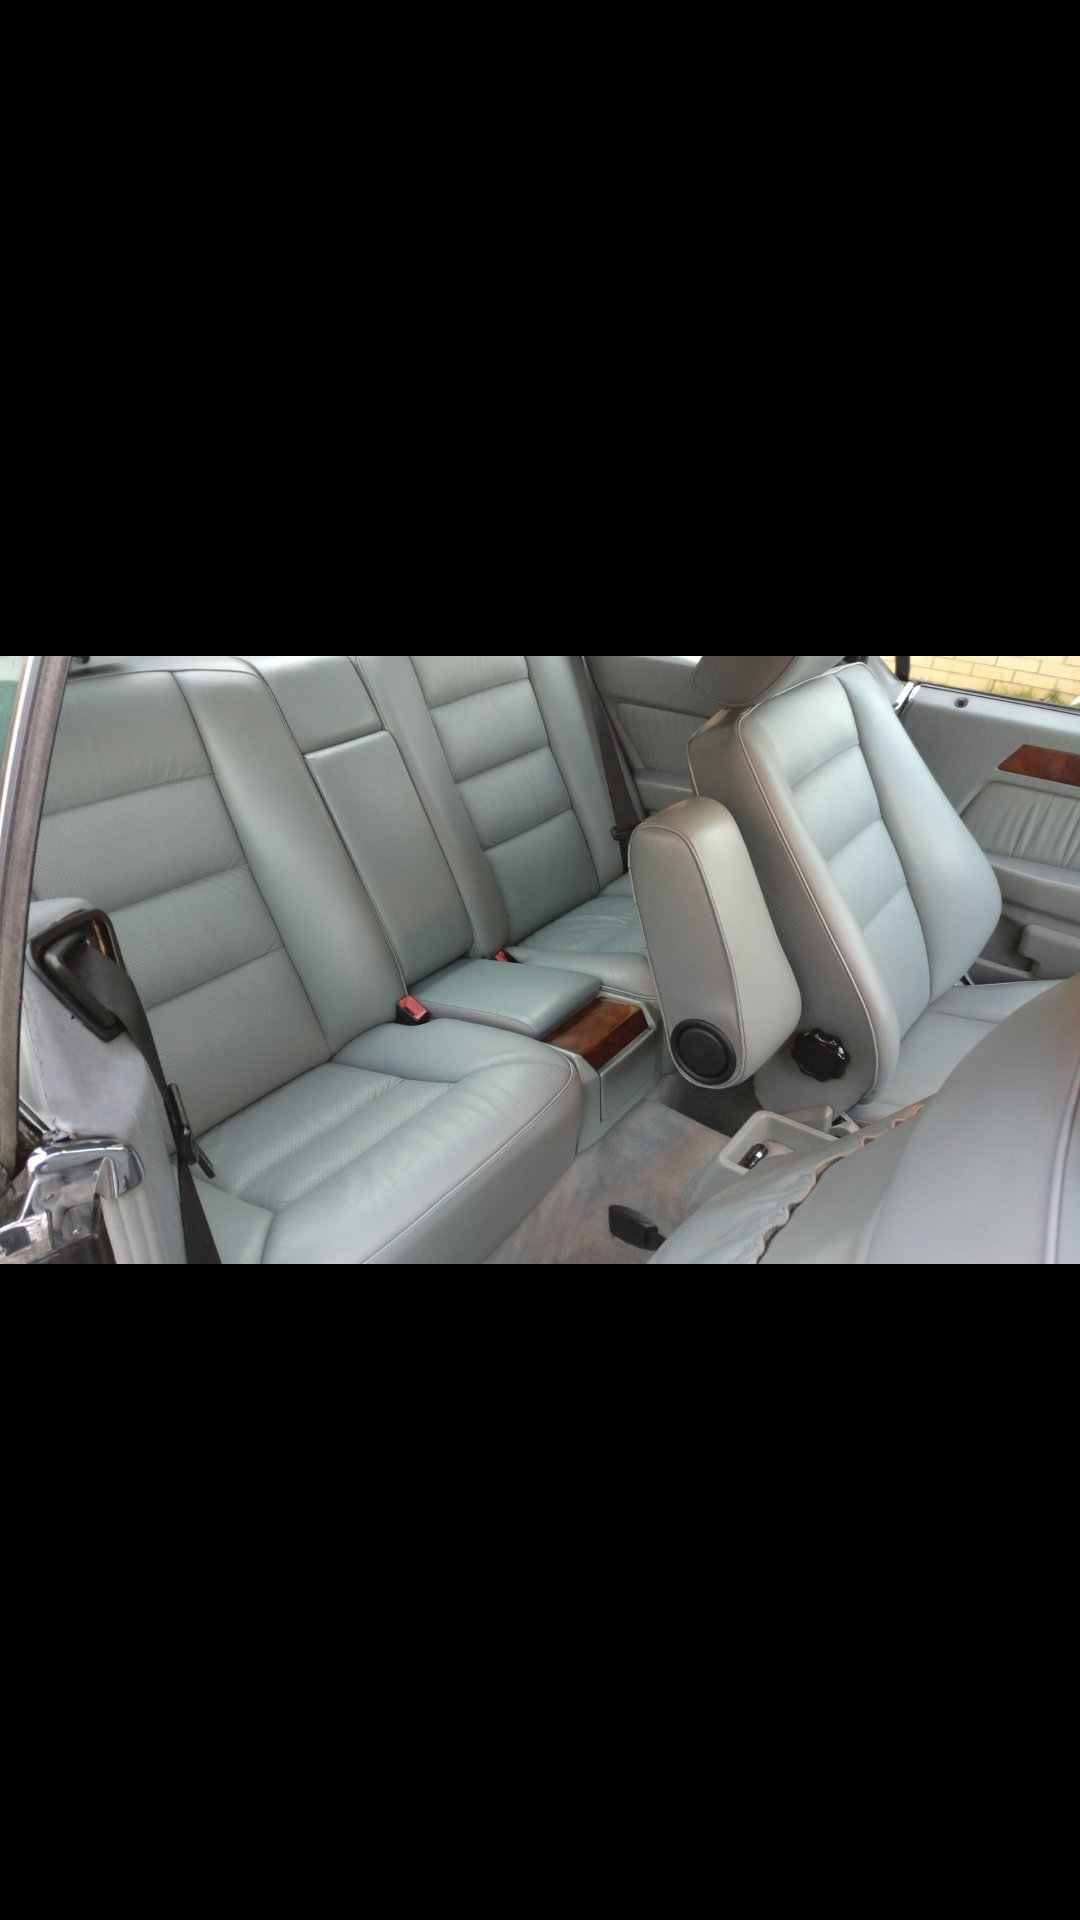 1994 Mercedes benz e class w124 e220 pillerless coupe  For Sale (picture 4 of 6)